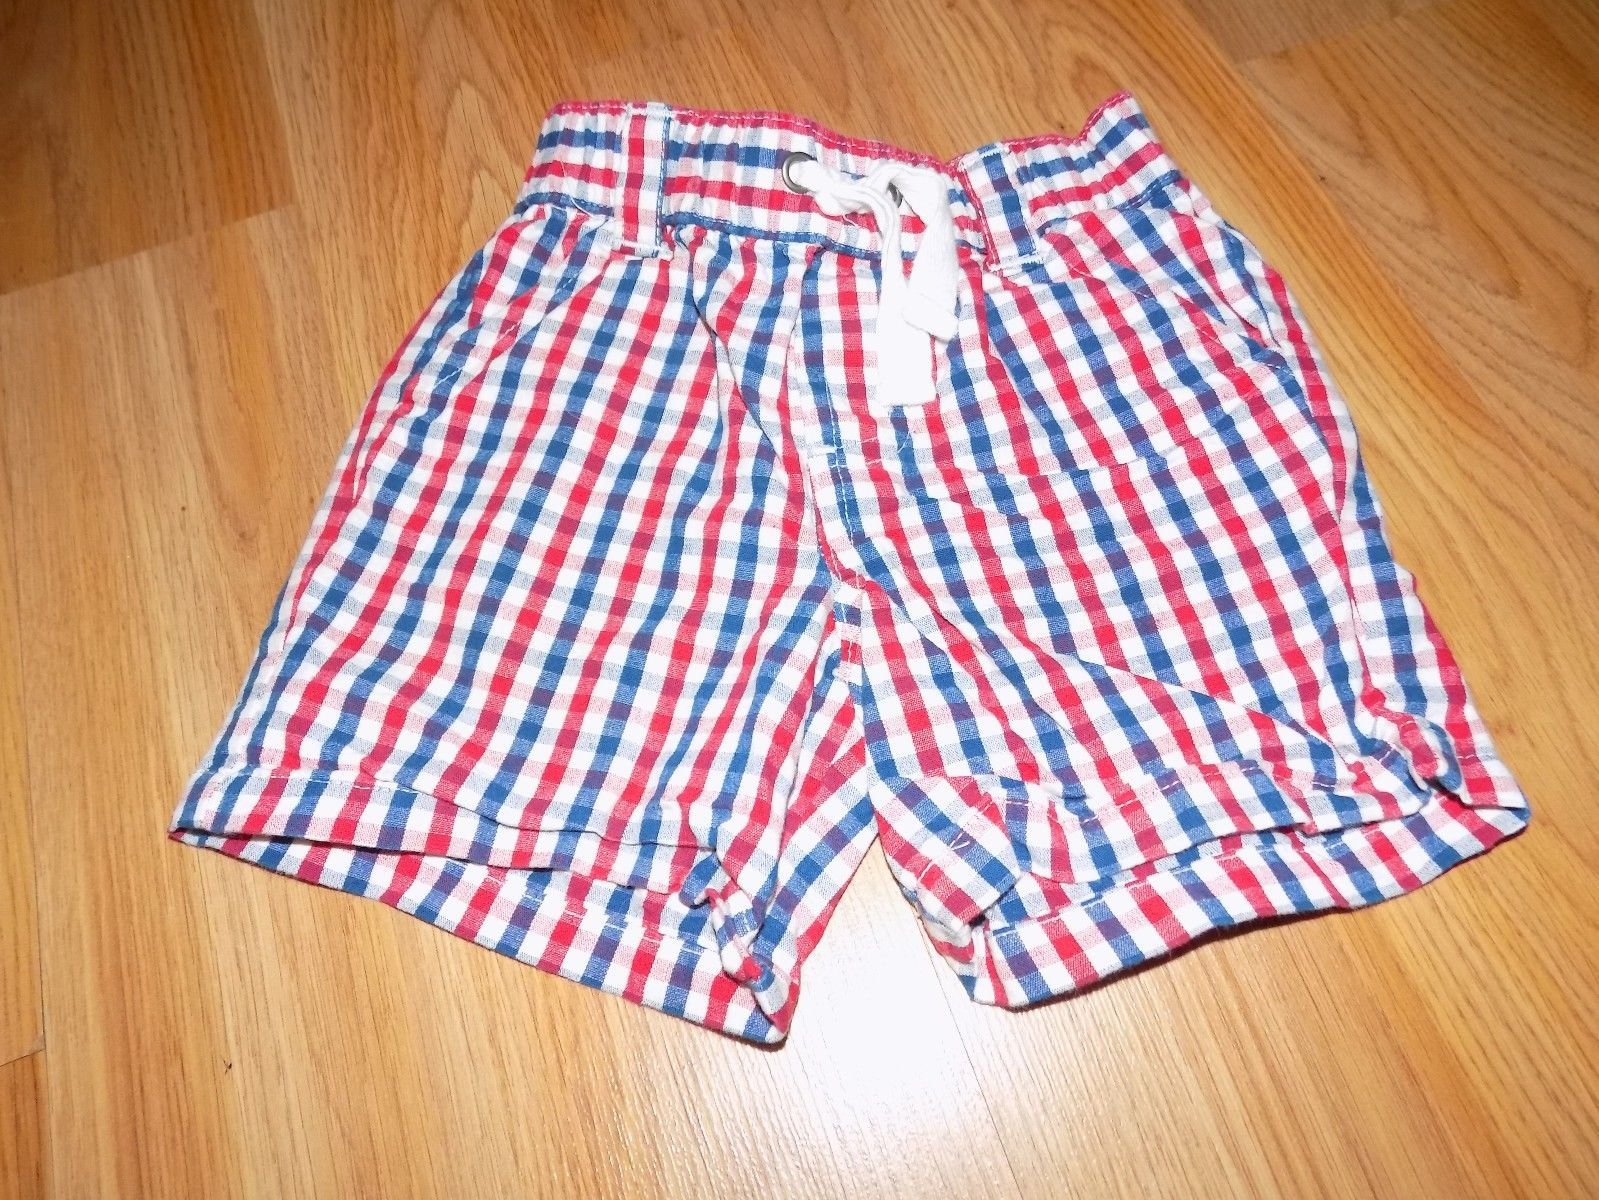 Primary image for Infant Size 6-9 Months Disney Store Red White Blue Plaid Checked Print Shorts